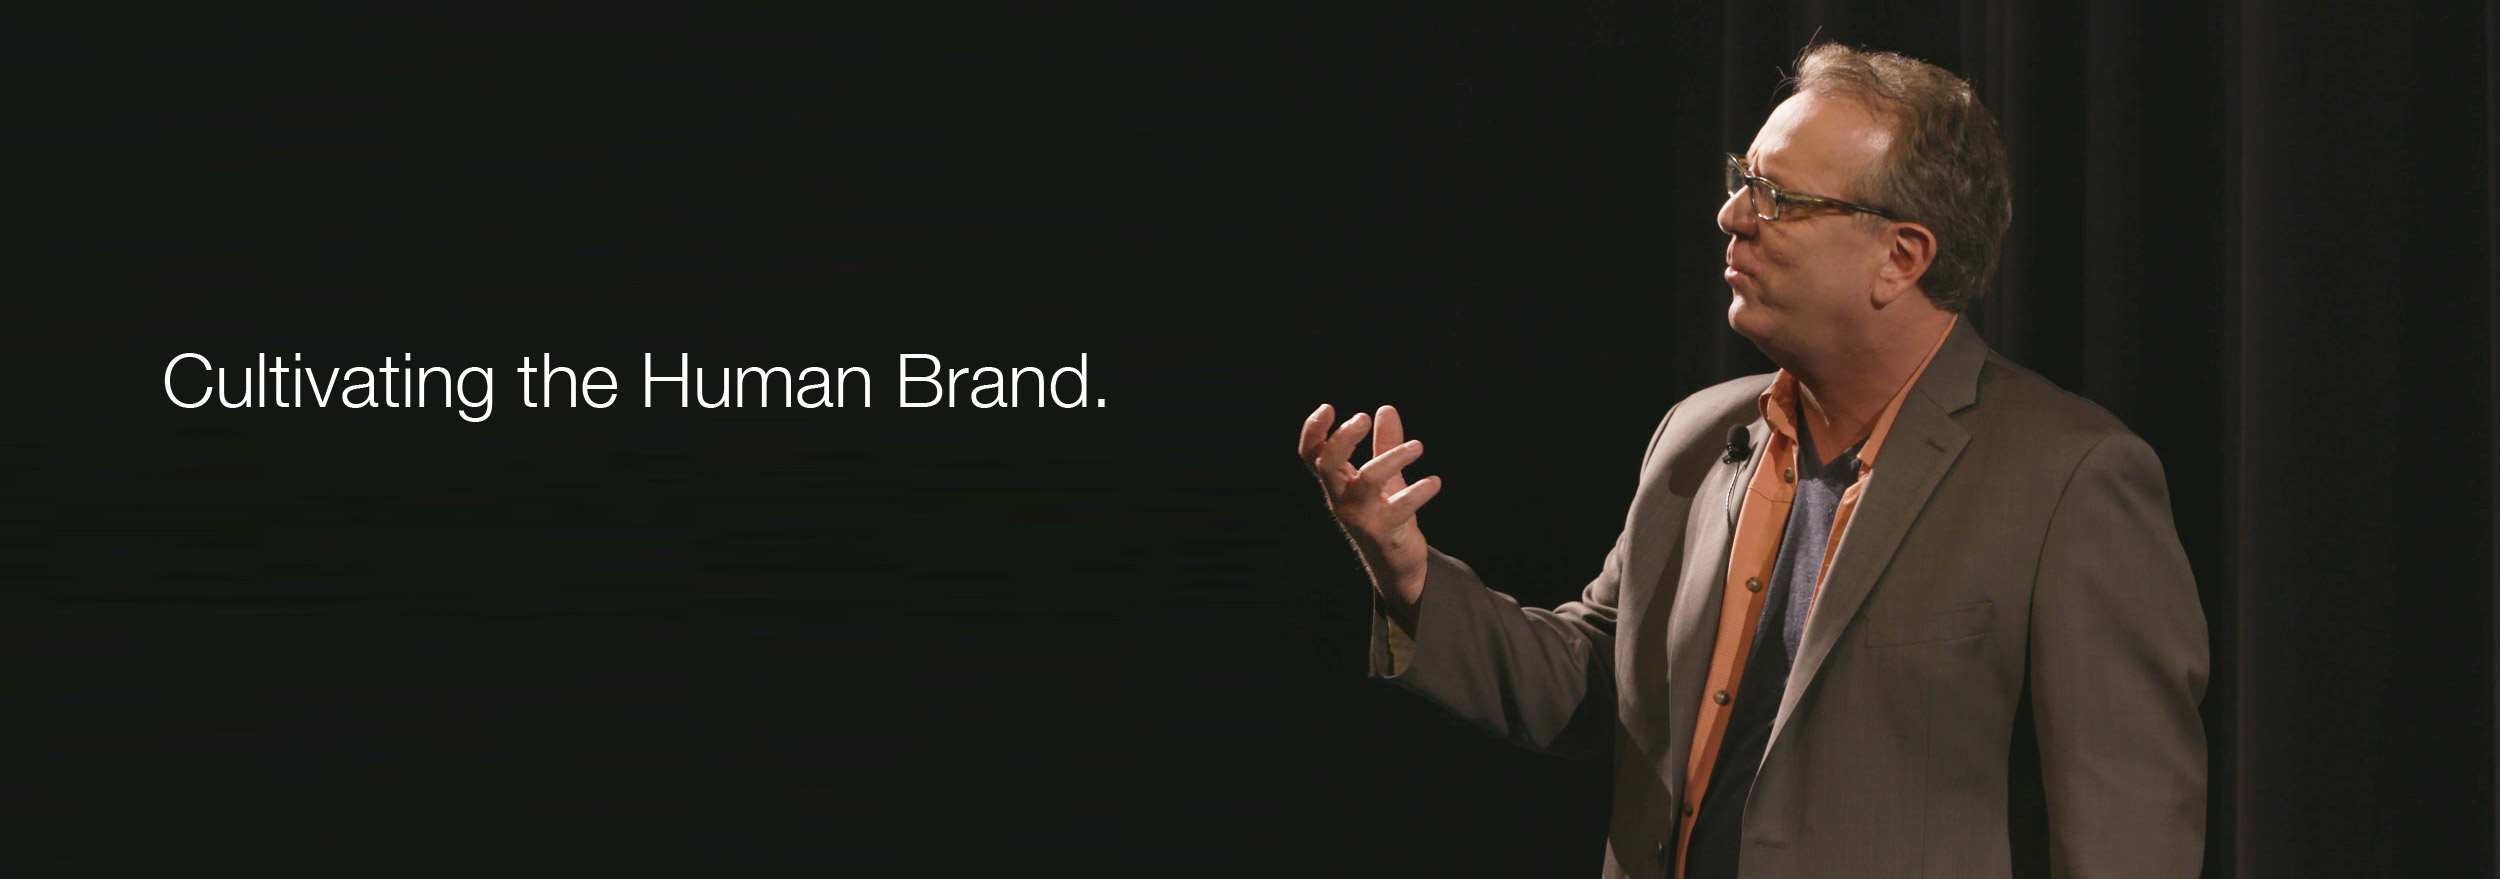 Cultivate the Human Brand